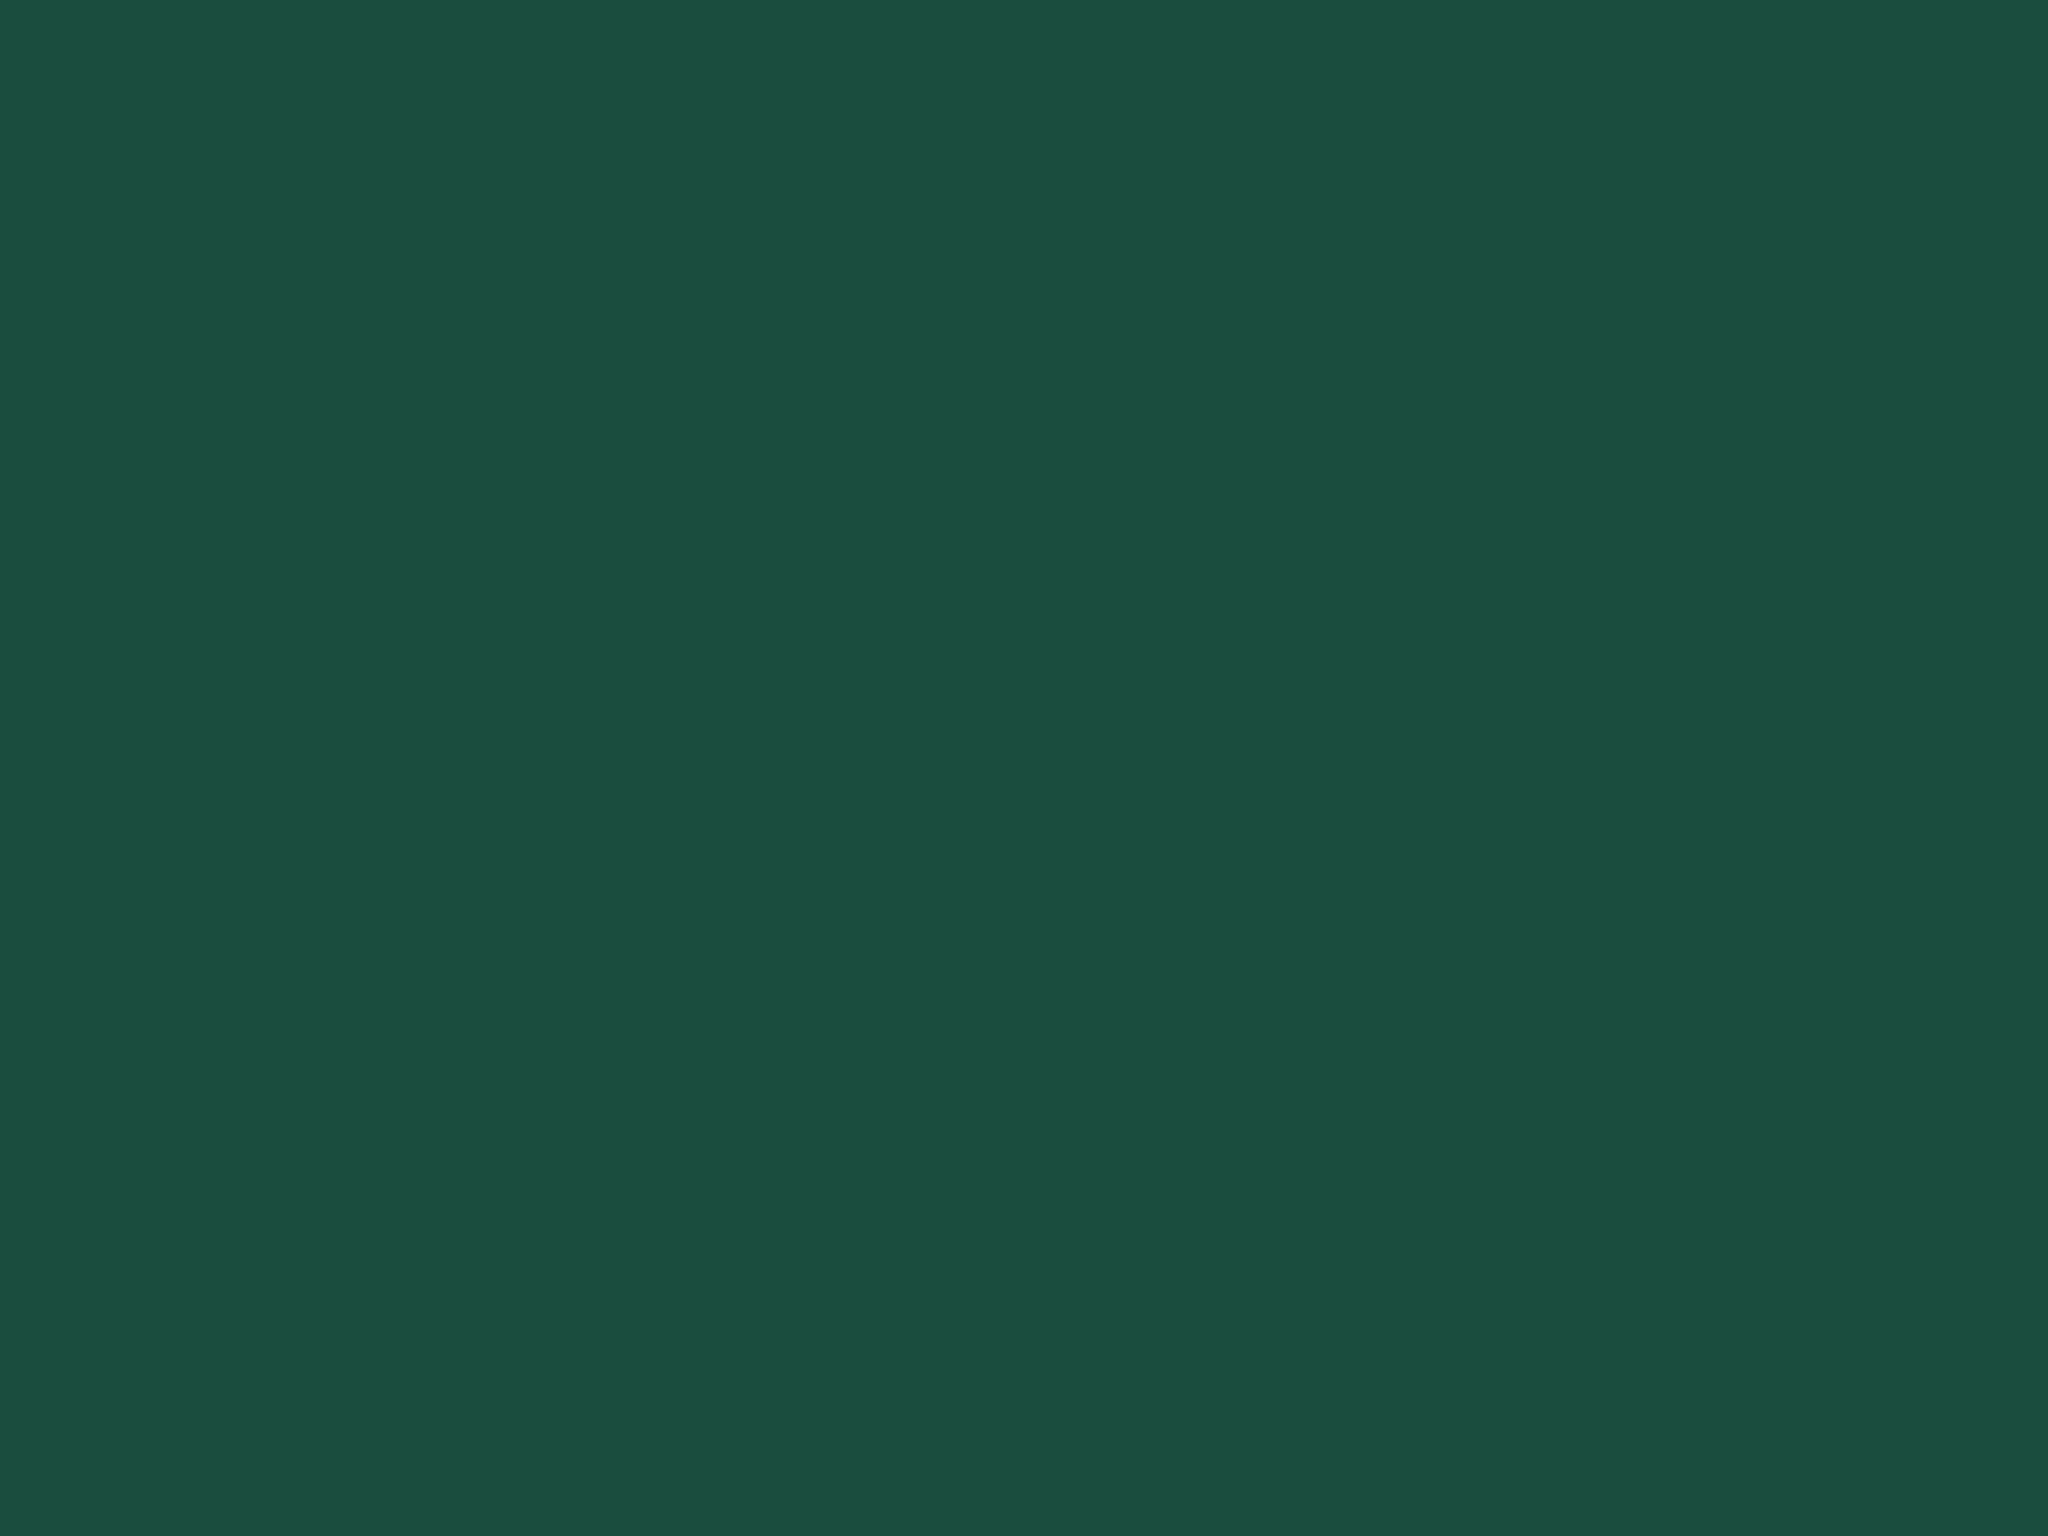 2048x1536 English Green Solid Color Background